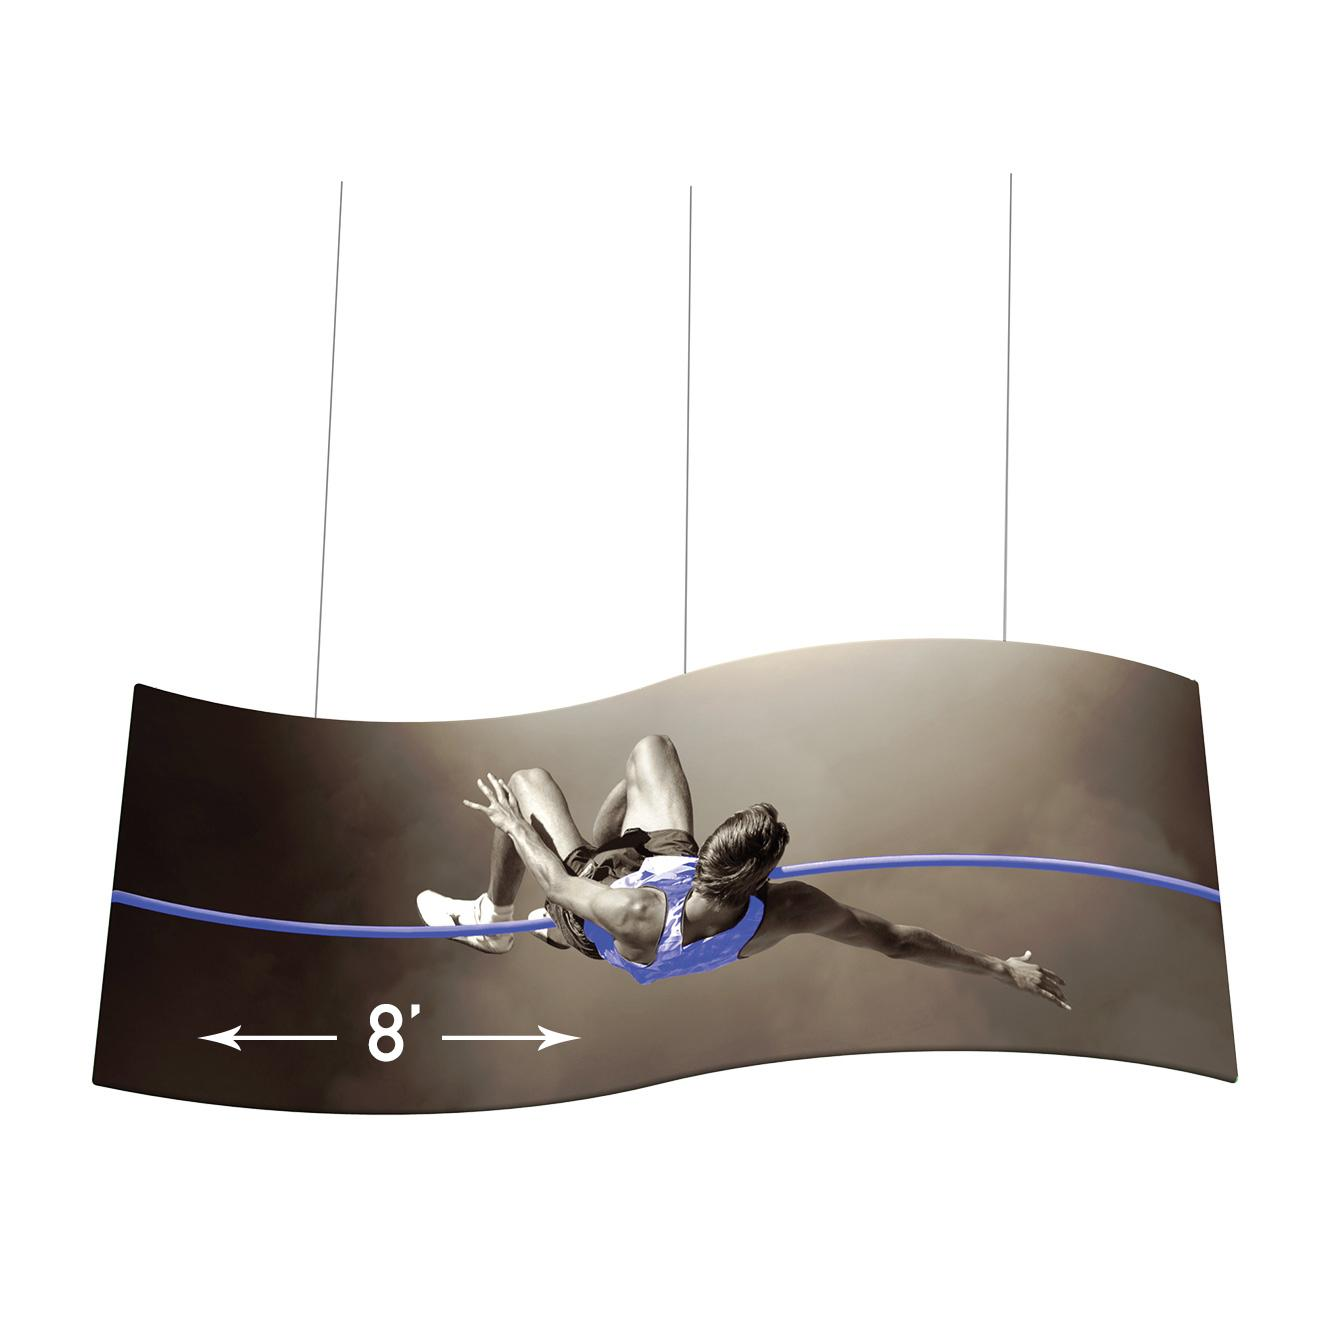 S-curve Fabric Hanging Signs